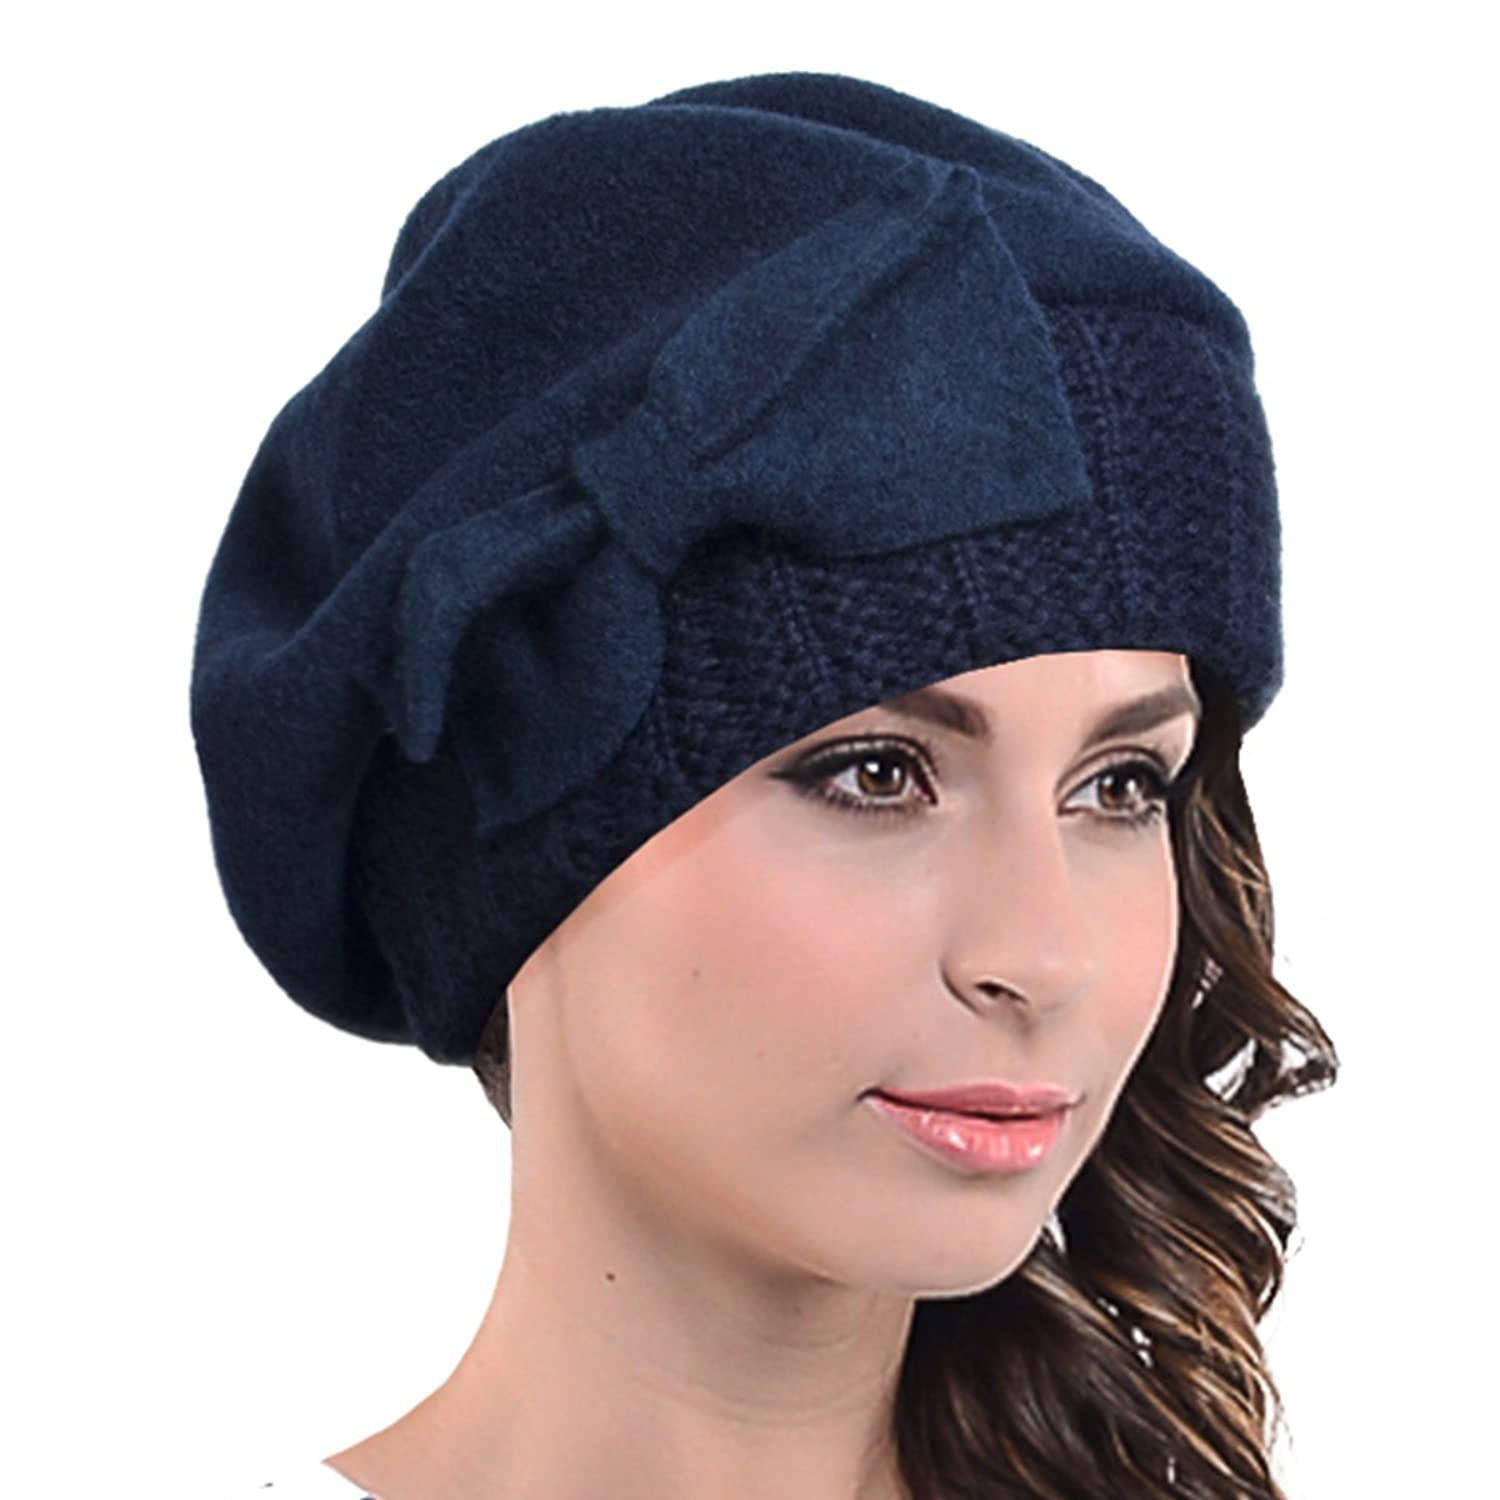 Vintage Hair Accessories: Combs, Headbands, Flowers, Scarf, Wigs Lady French Beret Wool Beret Chic Beanie Winter Hat Jf-br034 $21.99 AT vintagedancer.com